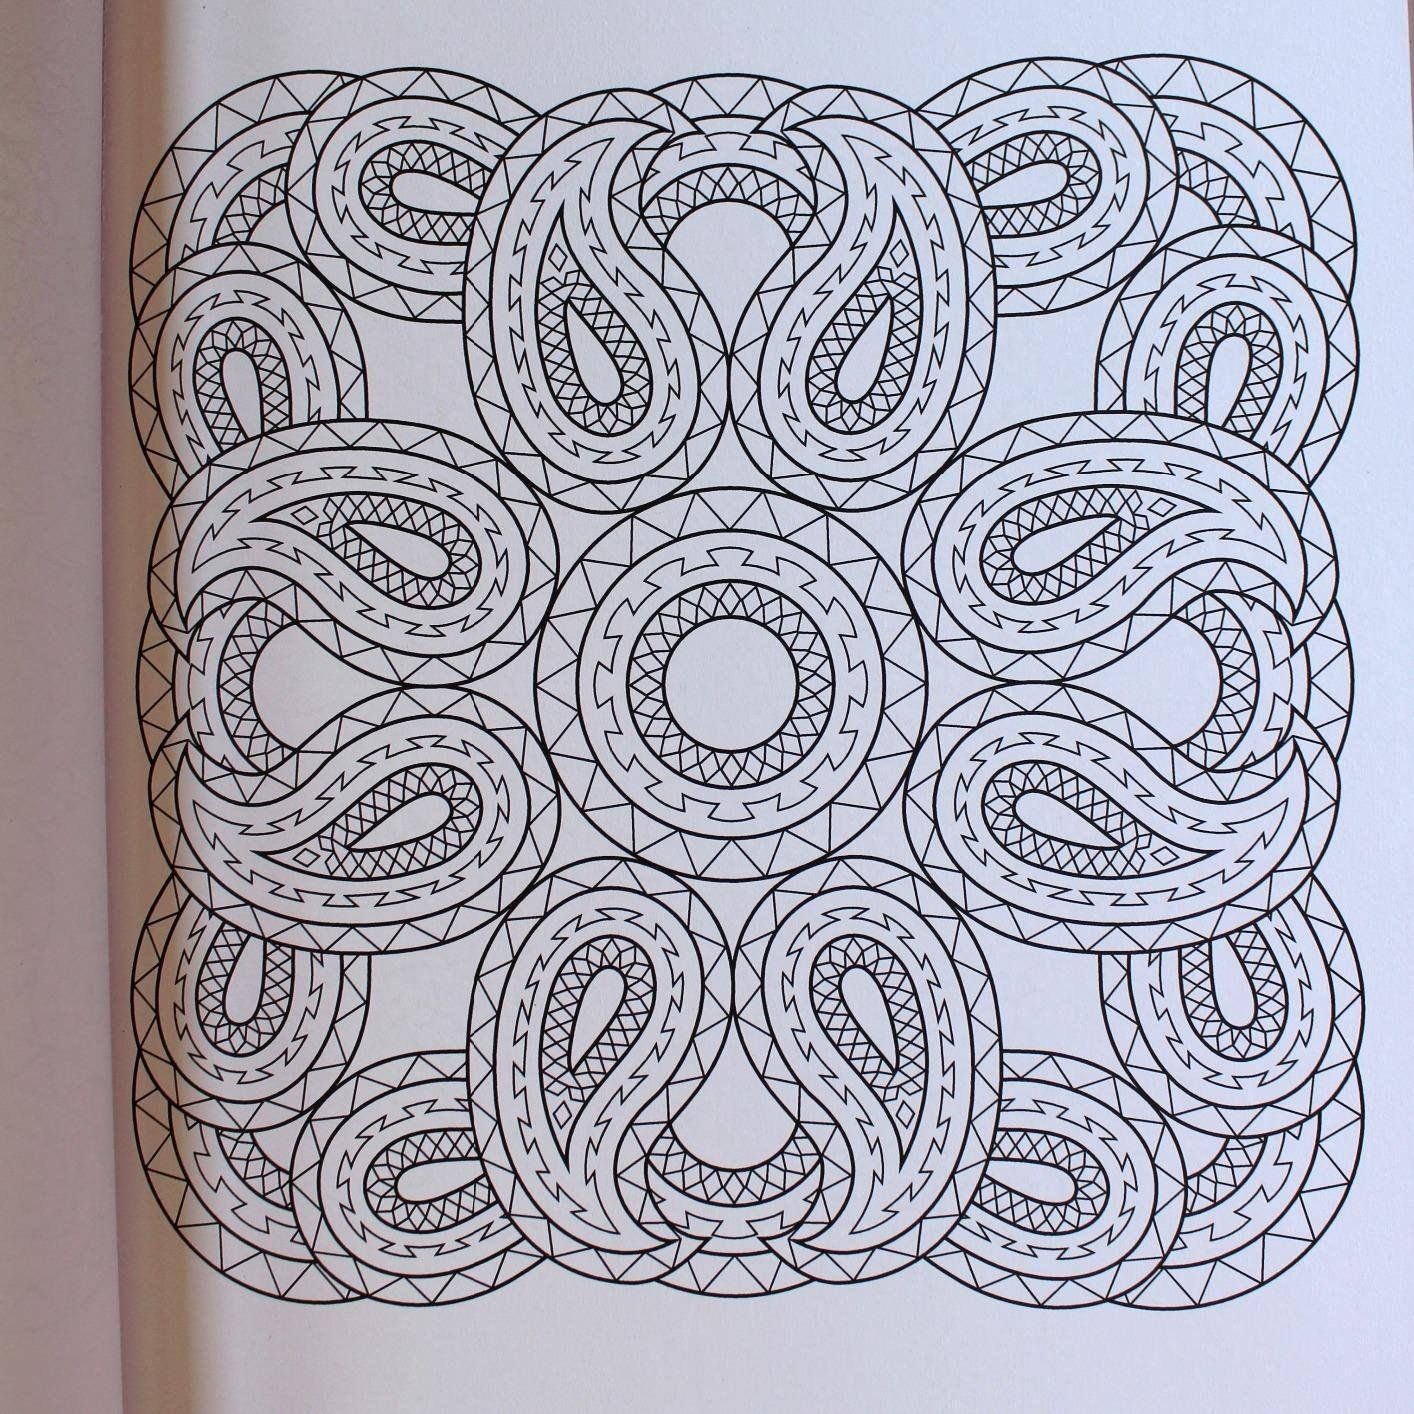 Mandala coloring pages amazon - Creative Haven Paisley Mandalas Coloring Book Creative Haven Coloring Books Shala Kerrigan